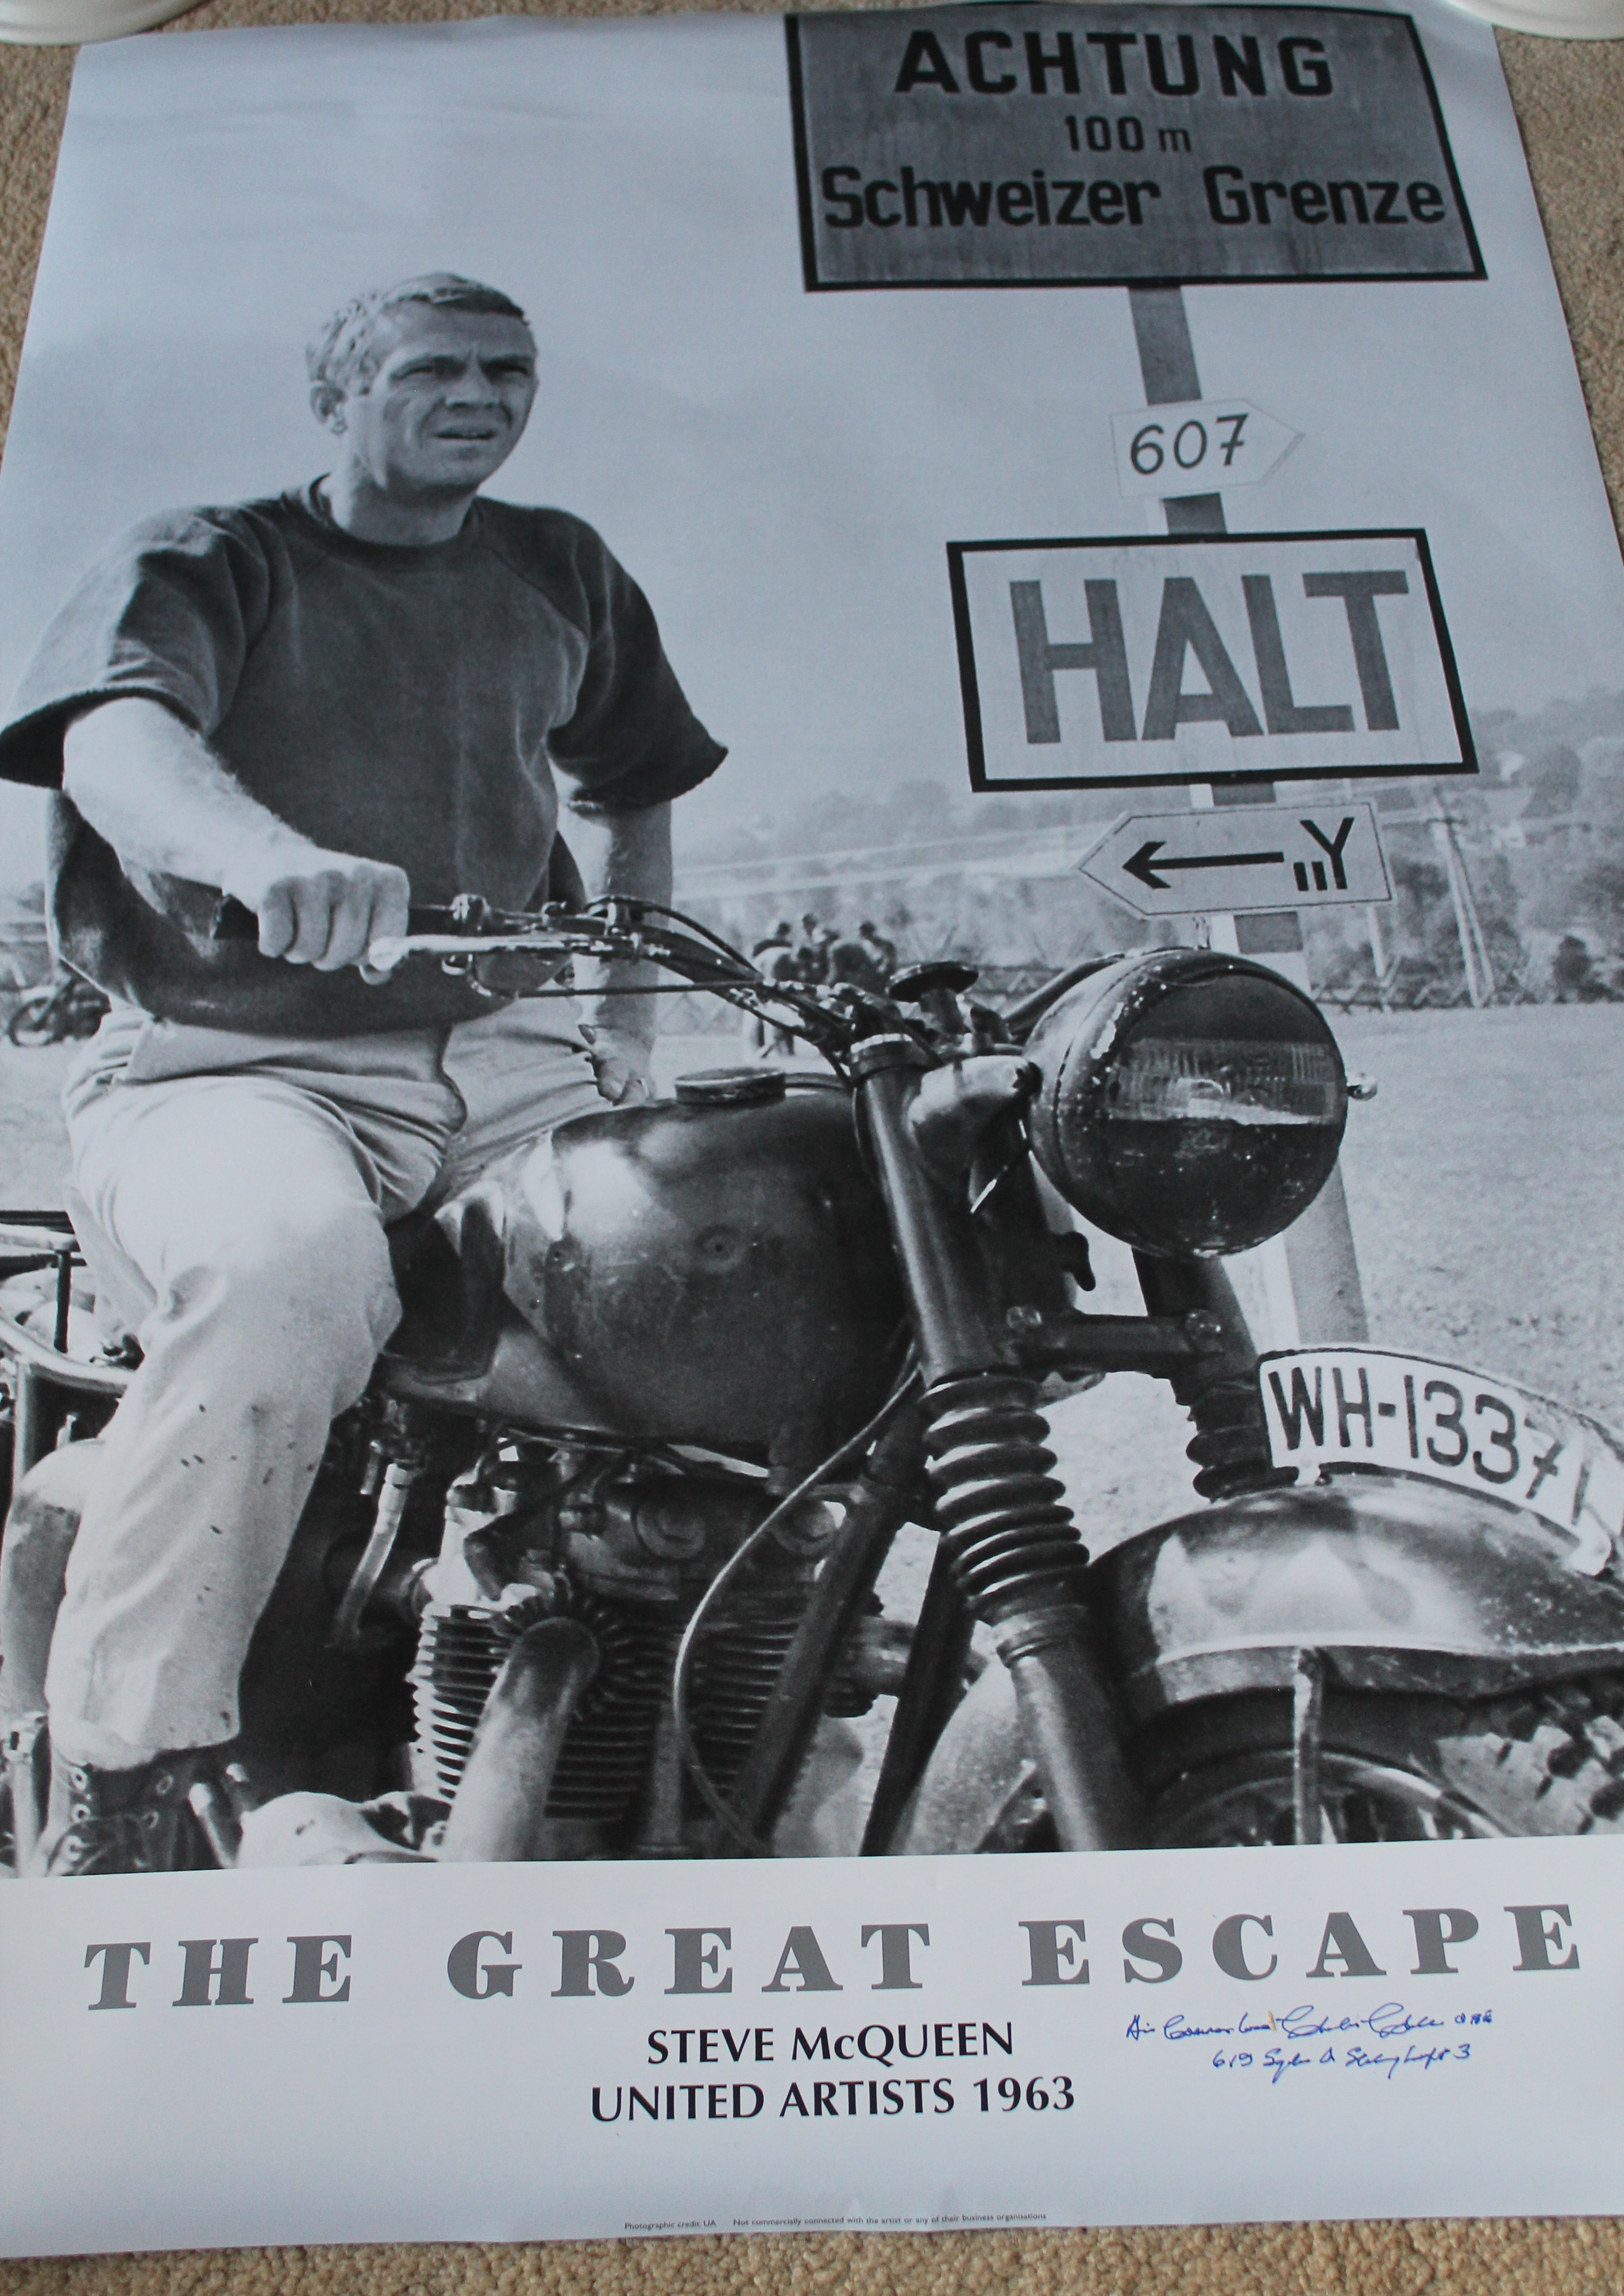 An iconic Steve McQueen poster from The Great Escape